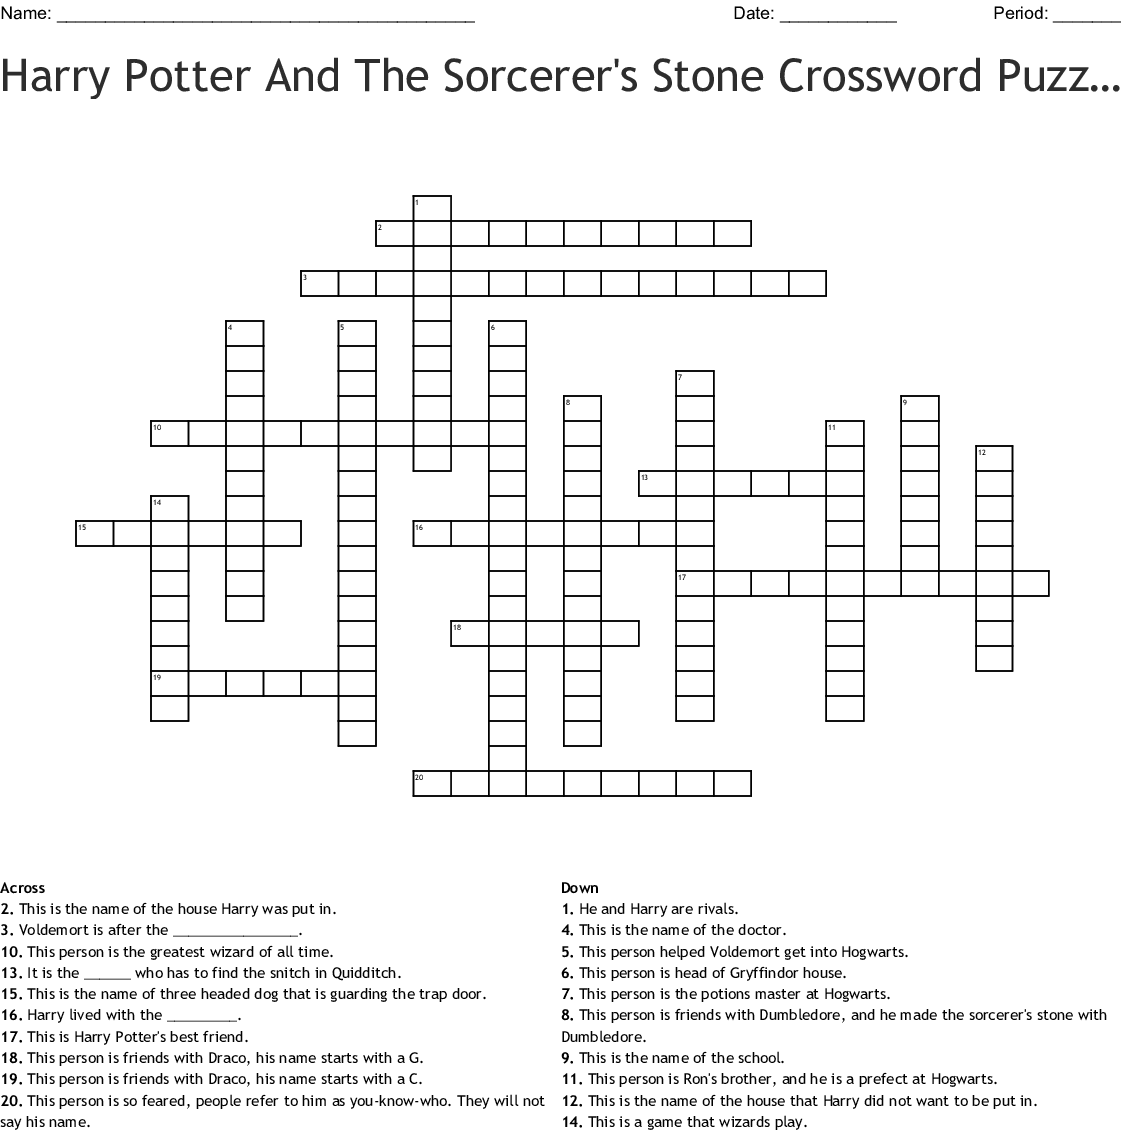 photograph about Harry Potter Crossword Puzzle Printable known as Harry Potter and The Sorcerers Stone Crossword - WordMint